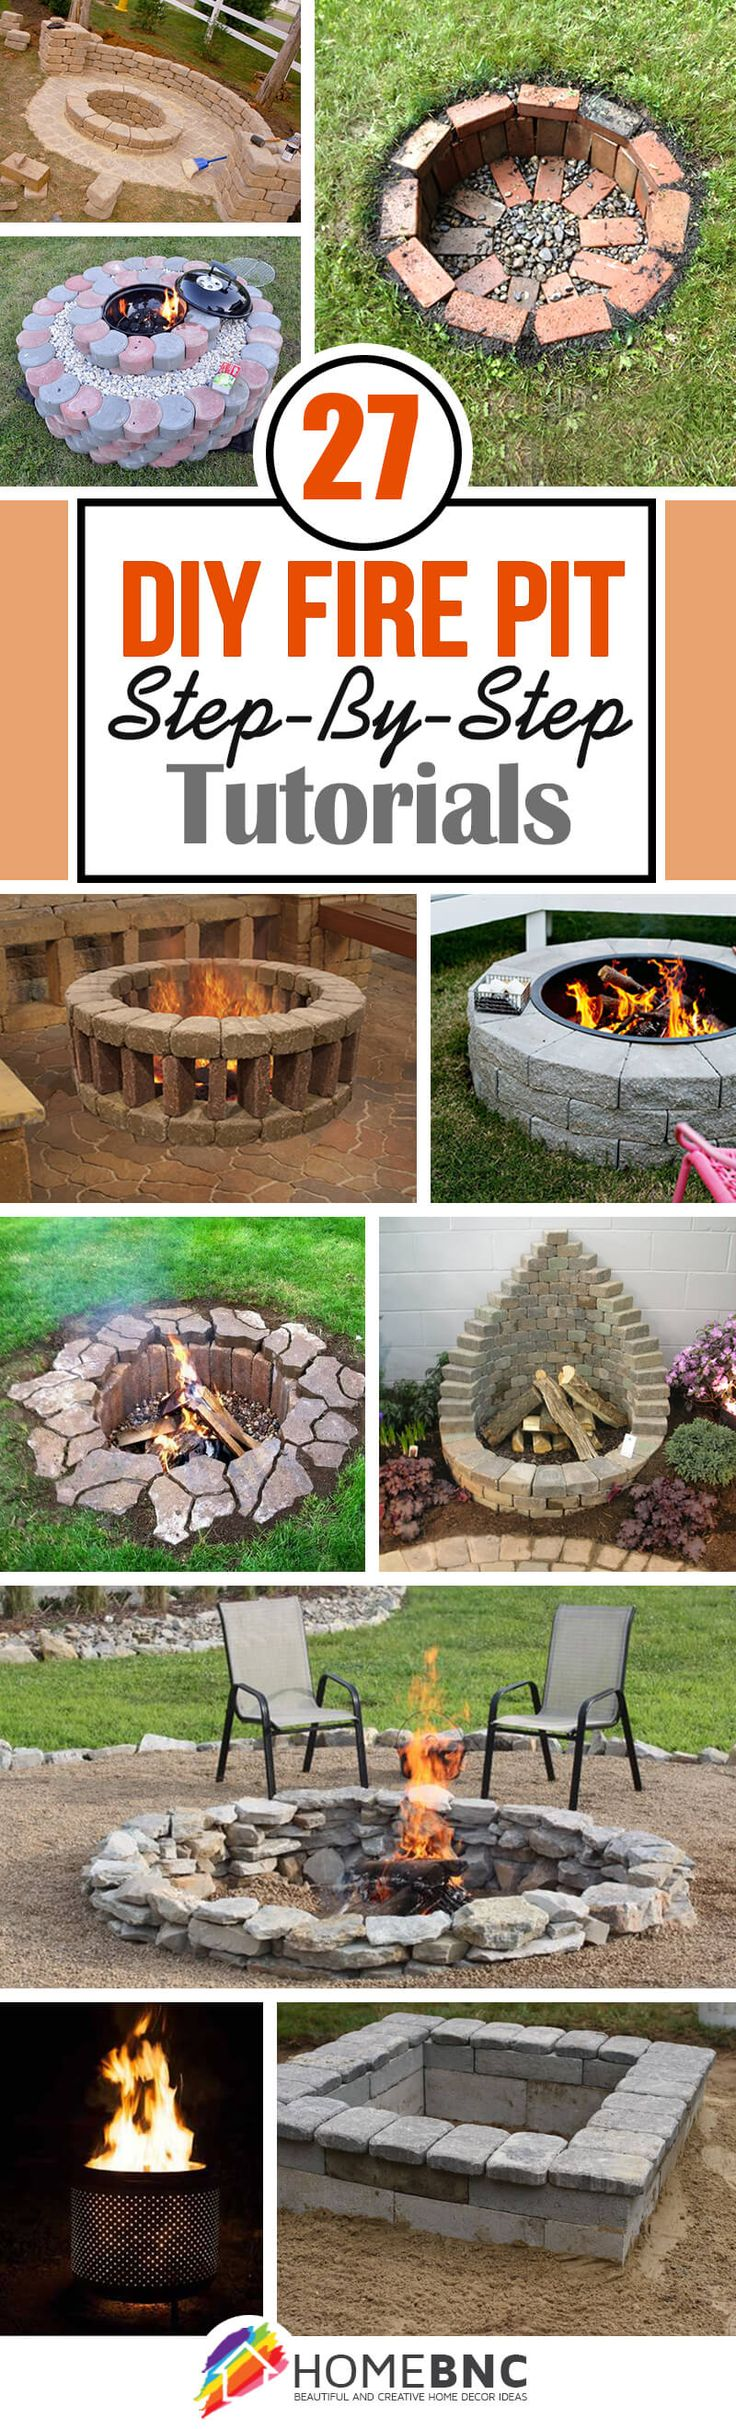 Louisiana cypress swings amp things inc - 27 Awesome Diy Firepit Ideas For Your Yard